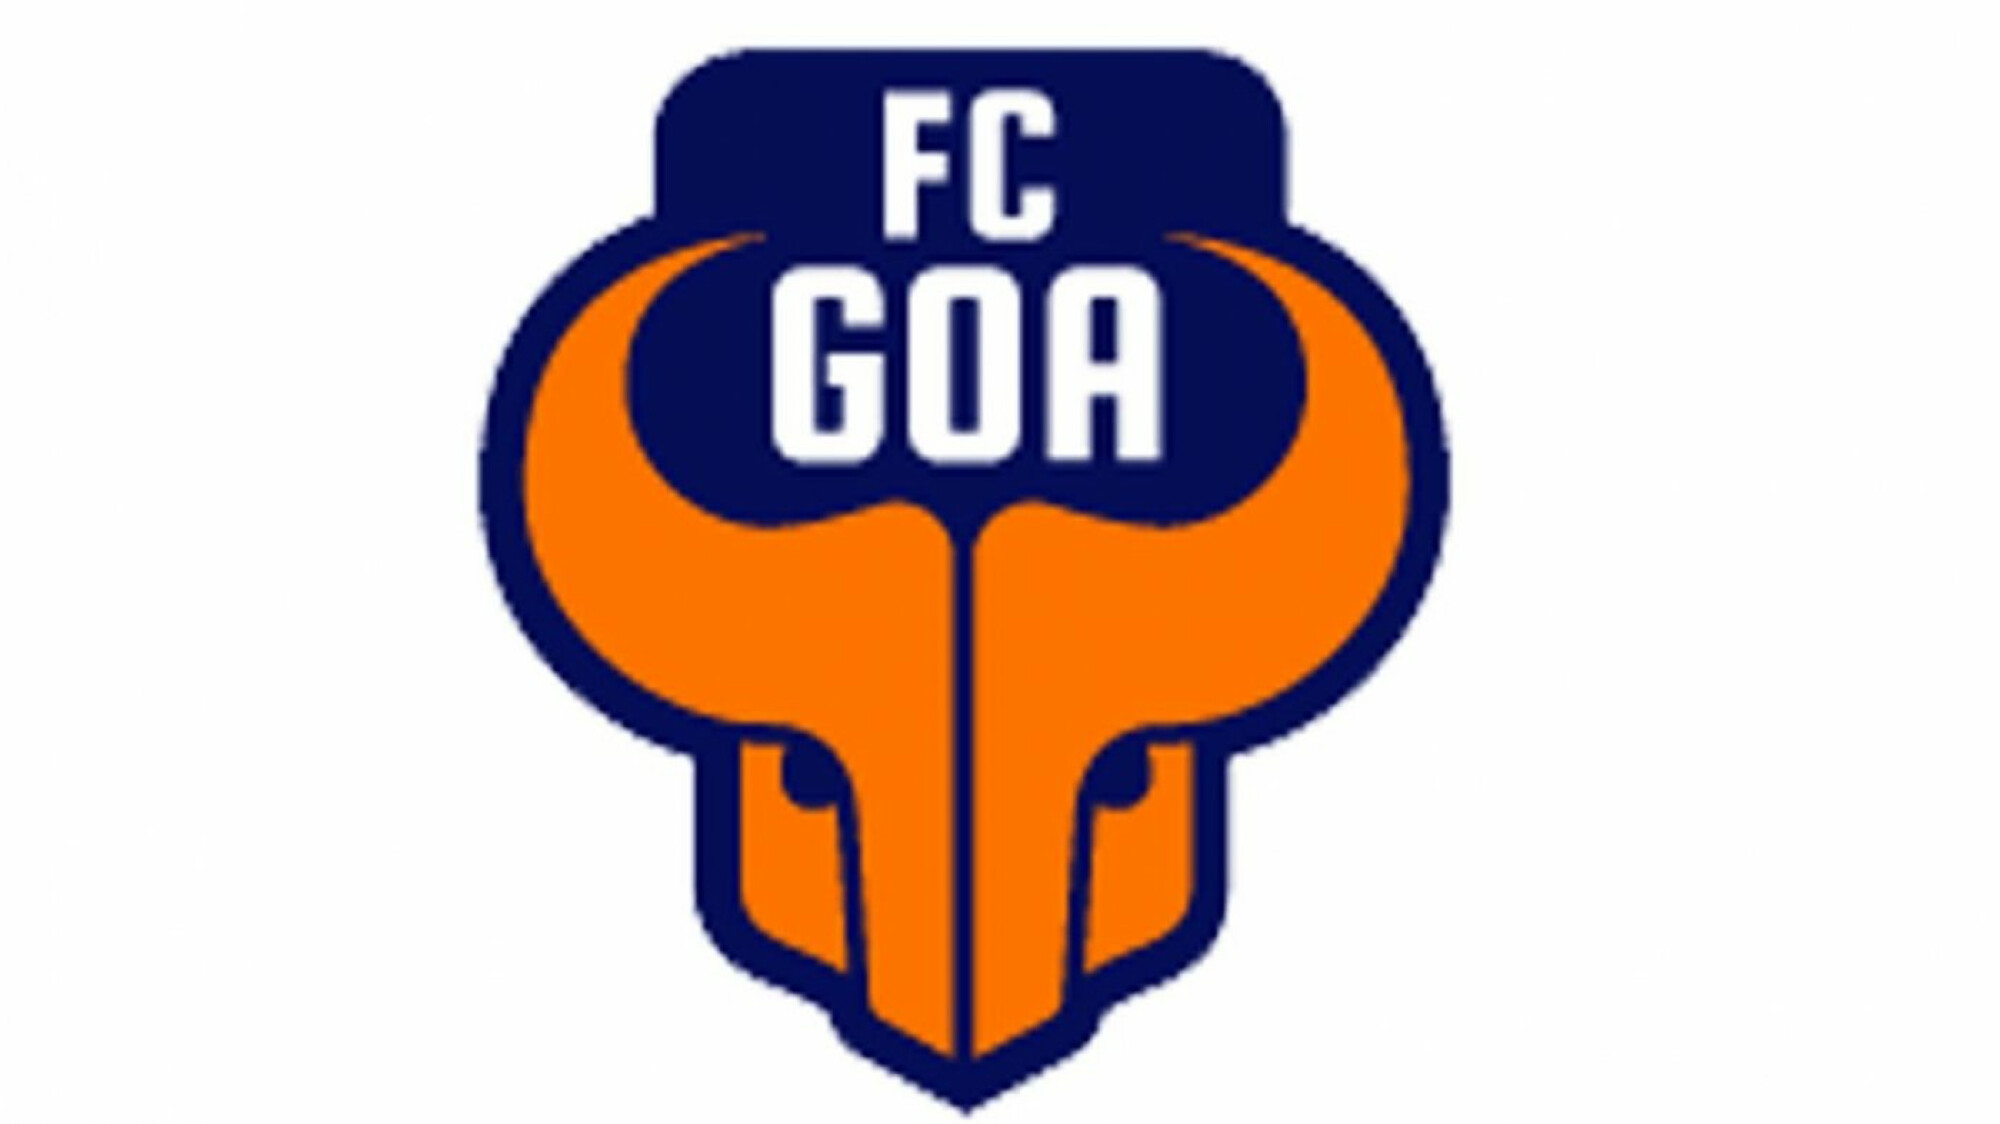 FC Goa threaten to move out of Goa.